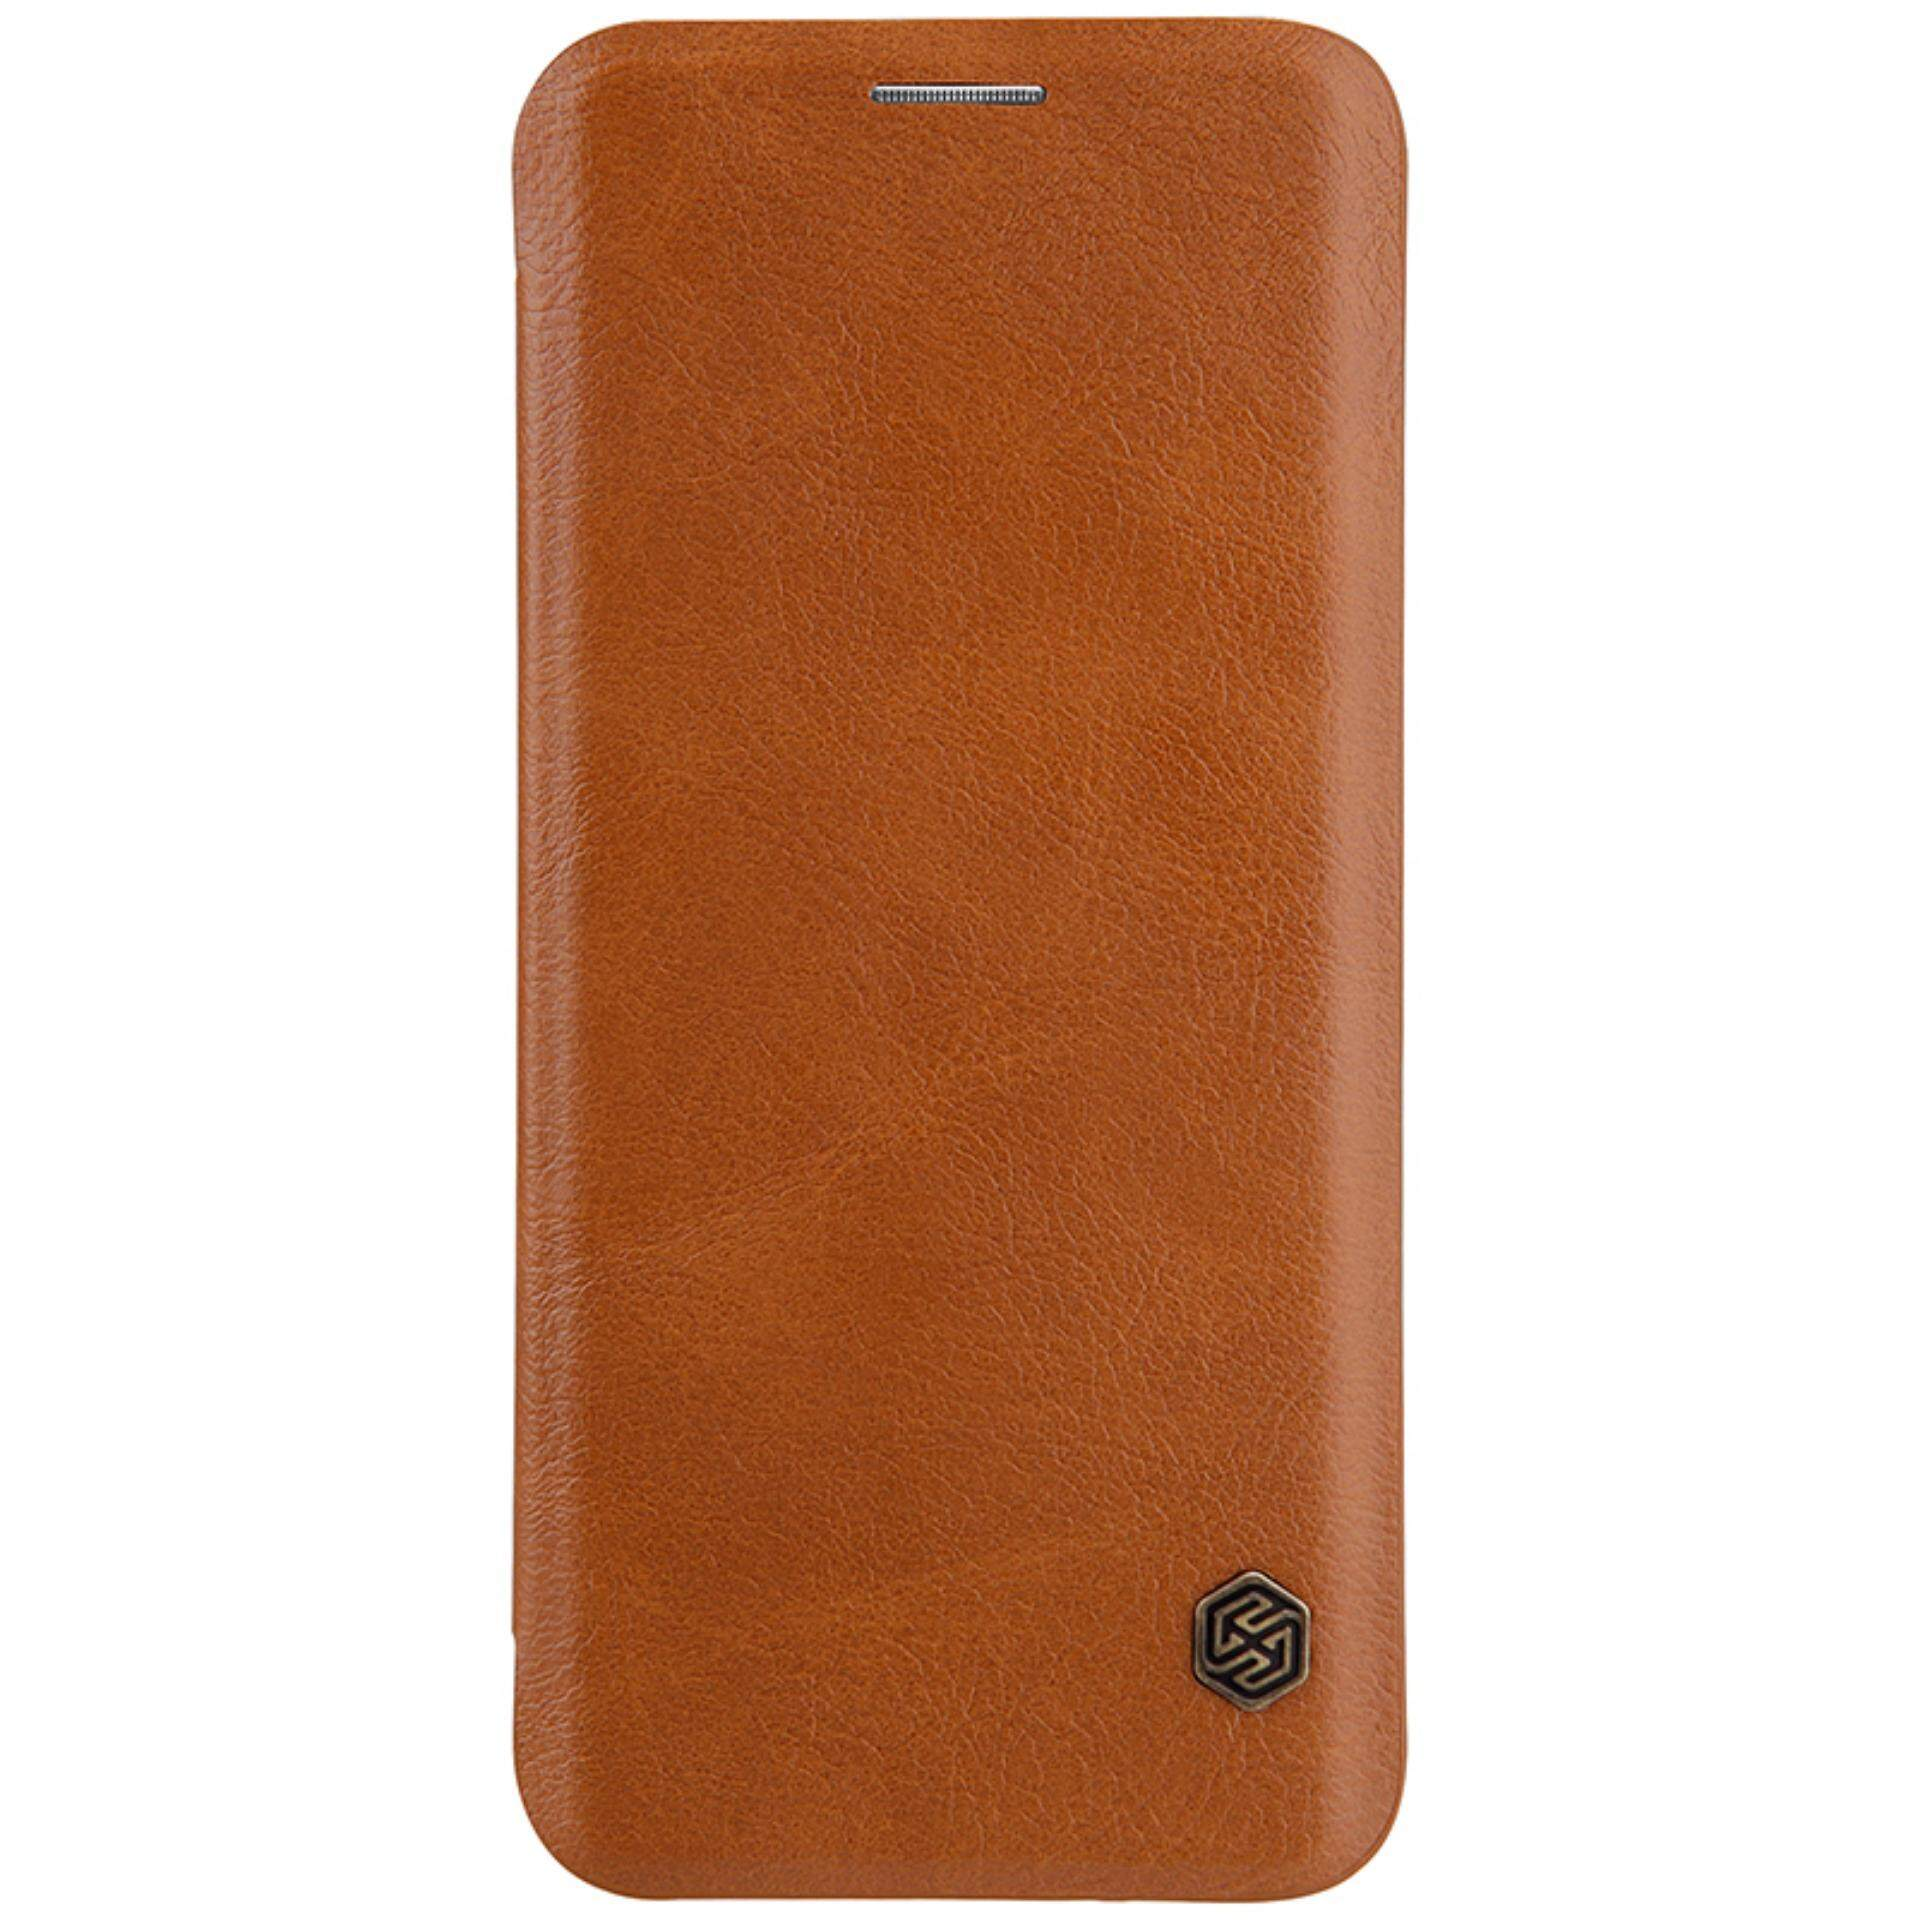 Buy Sell Cheapest Nillkin Samsung S8 Best Quality Product Deals Synthetic Fiber Case Galaxy Plus For Cover Brand Qin Leather 62 Inch